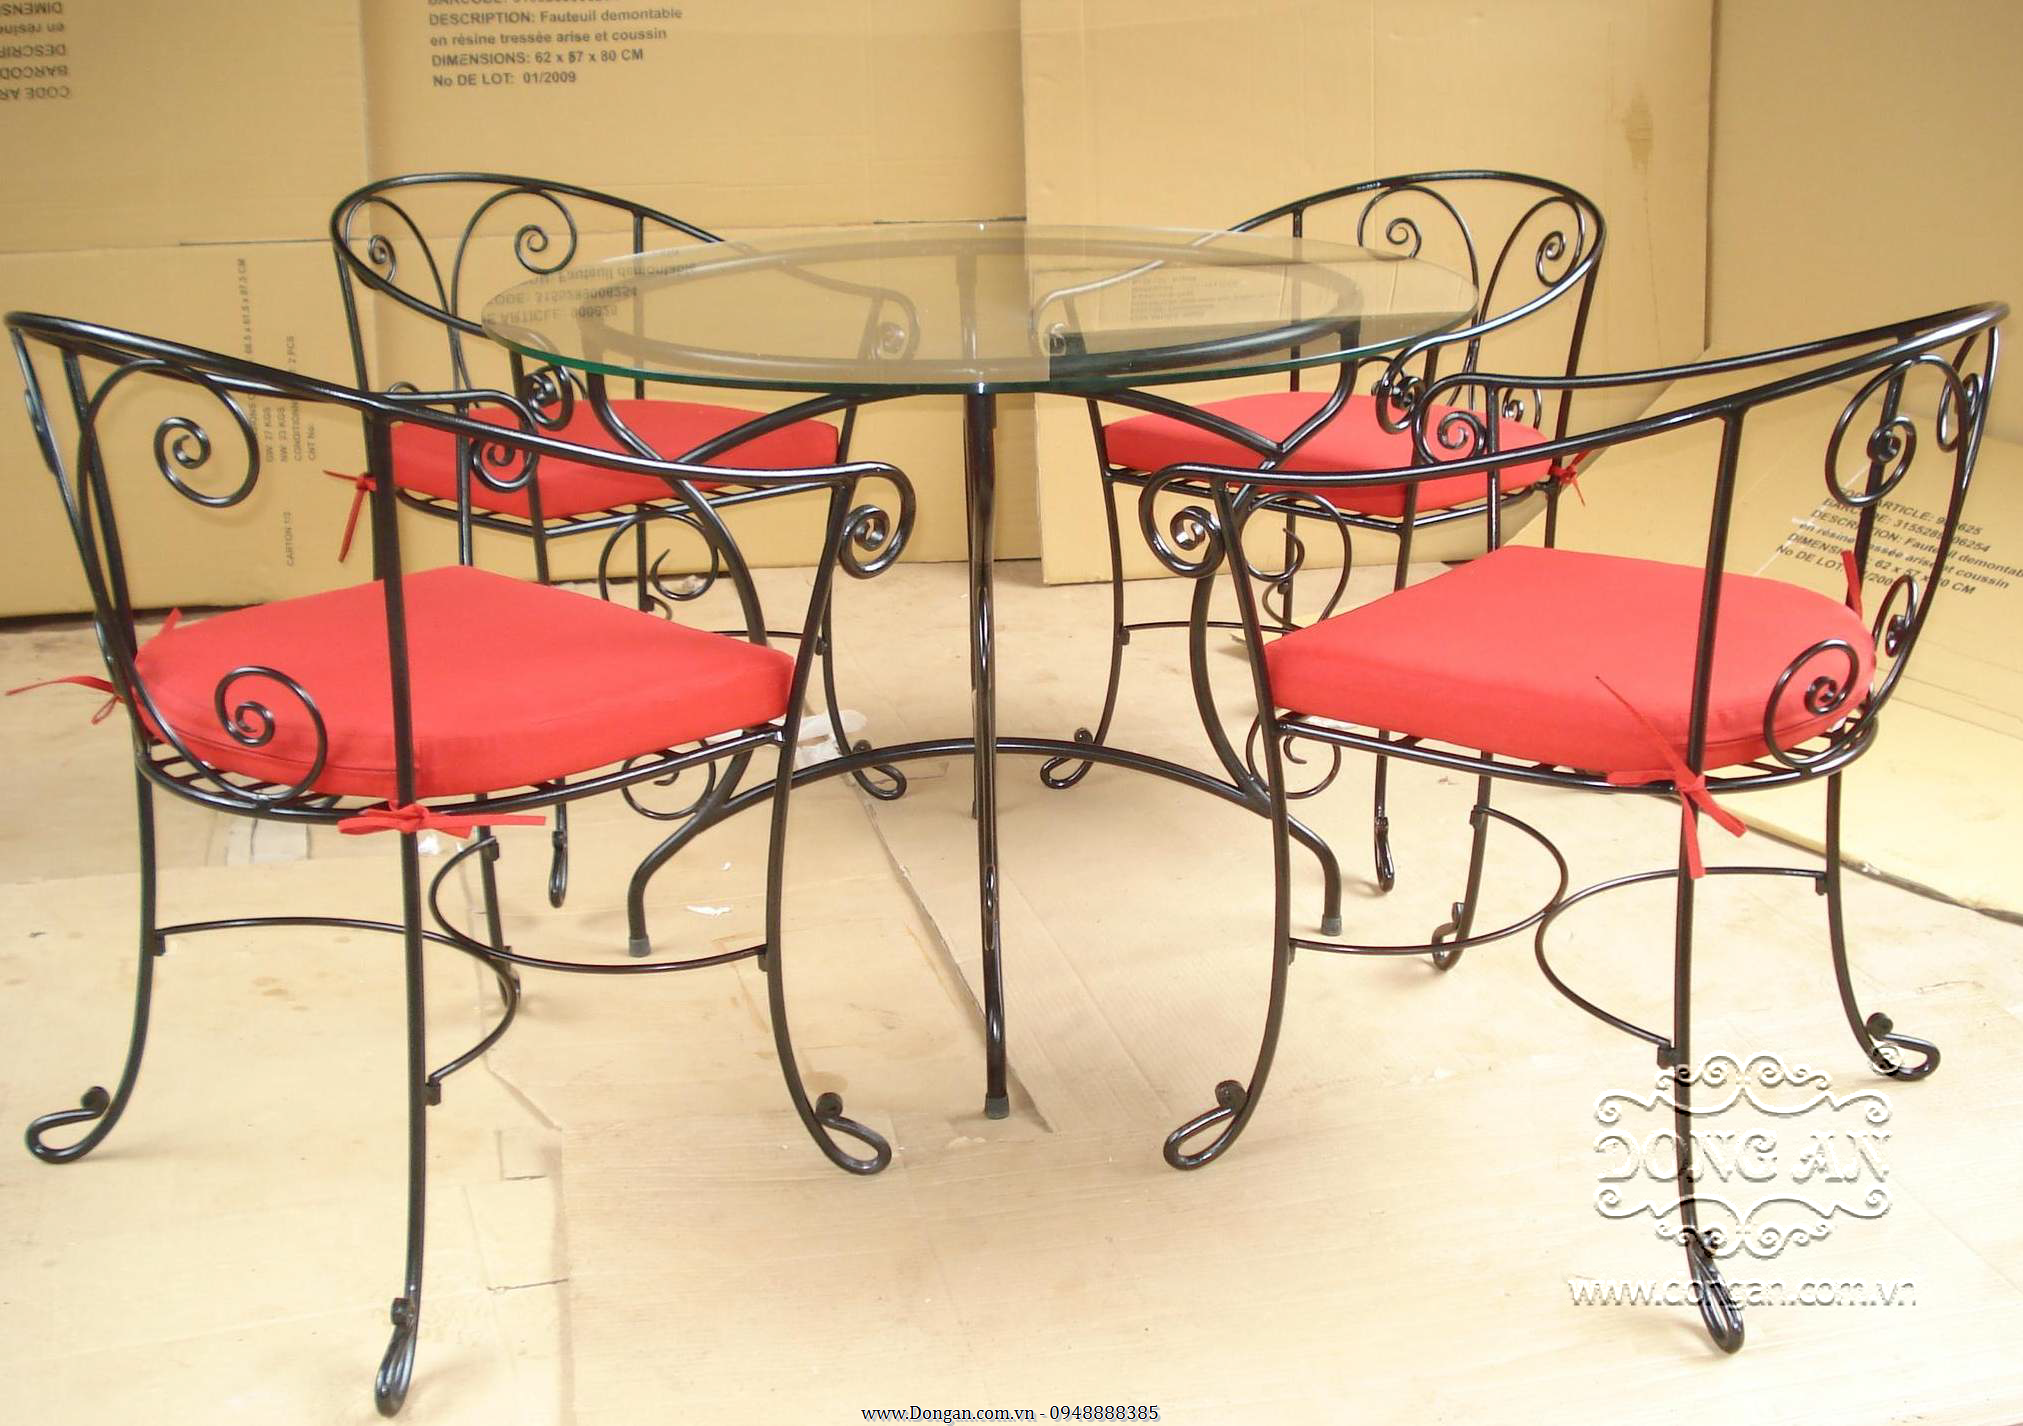 The beautiful garden furniture